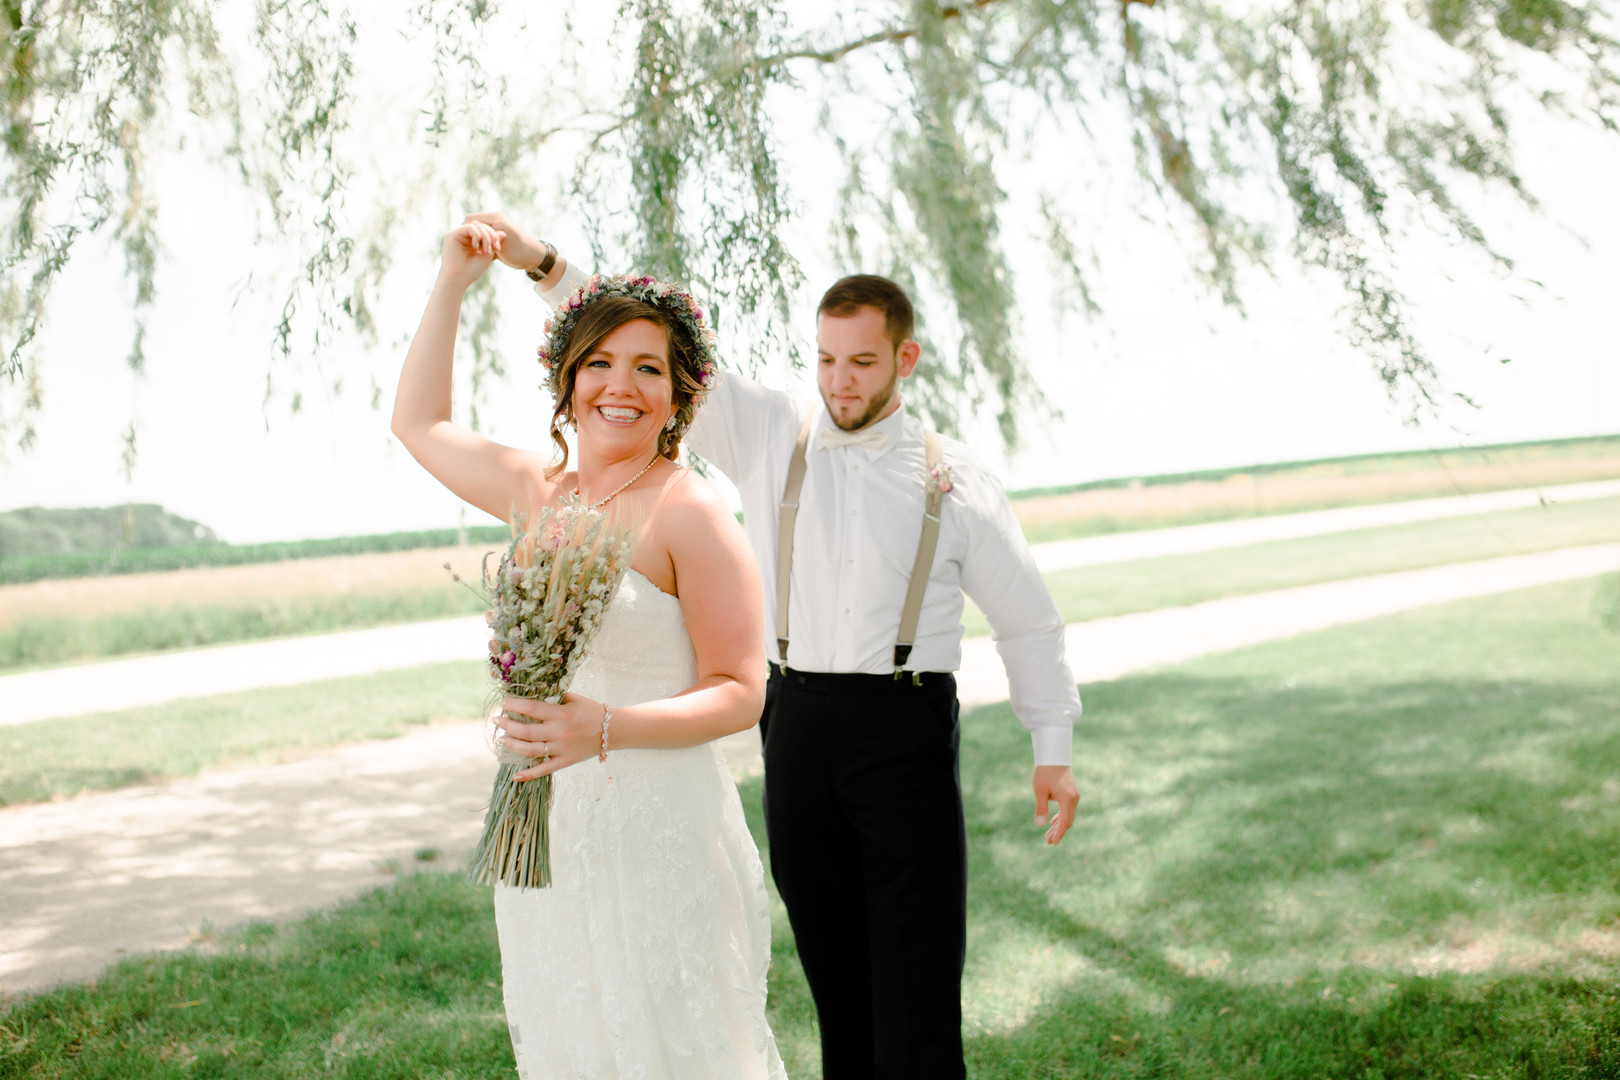 Wedding first look: Rustic country wedding in Minooka, IL captured by Katie Brsan Photography. Visit CHItheeWED.com for more wedding inspiration!